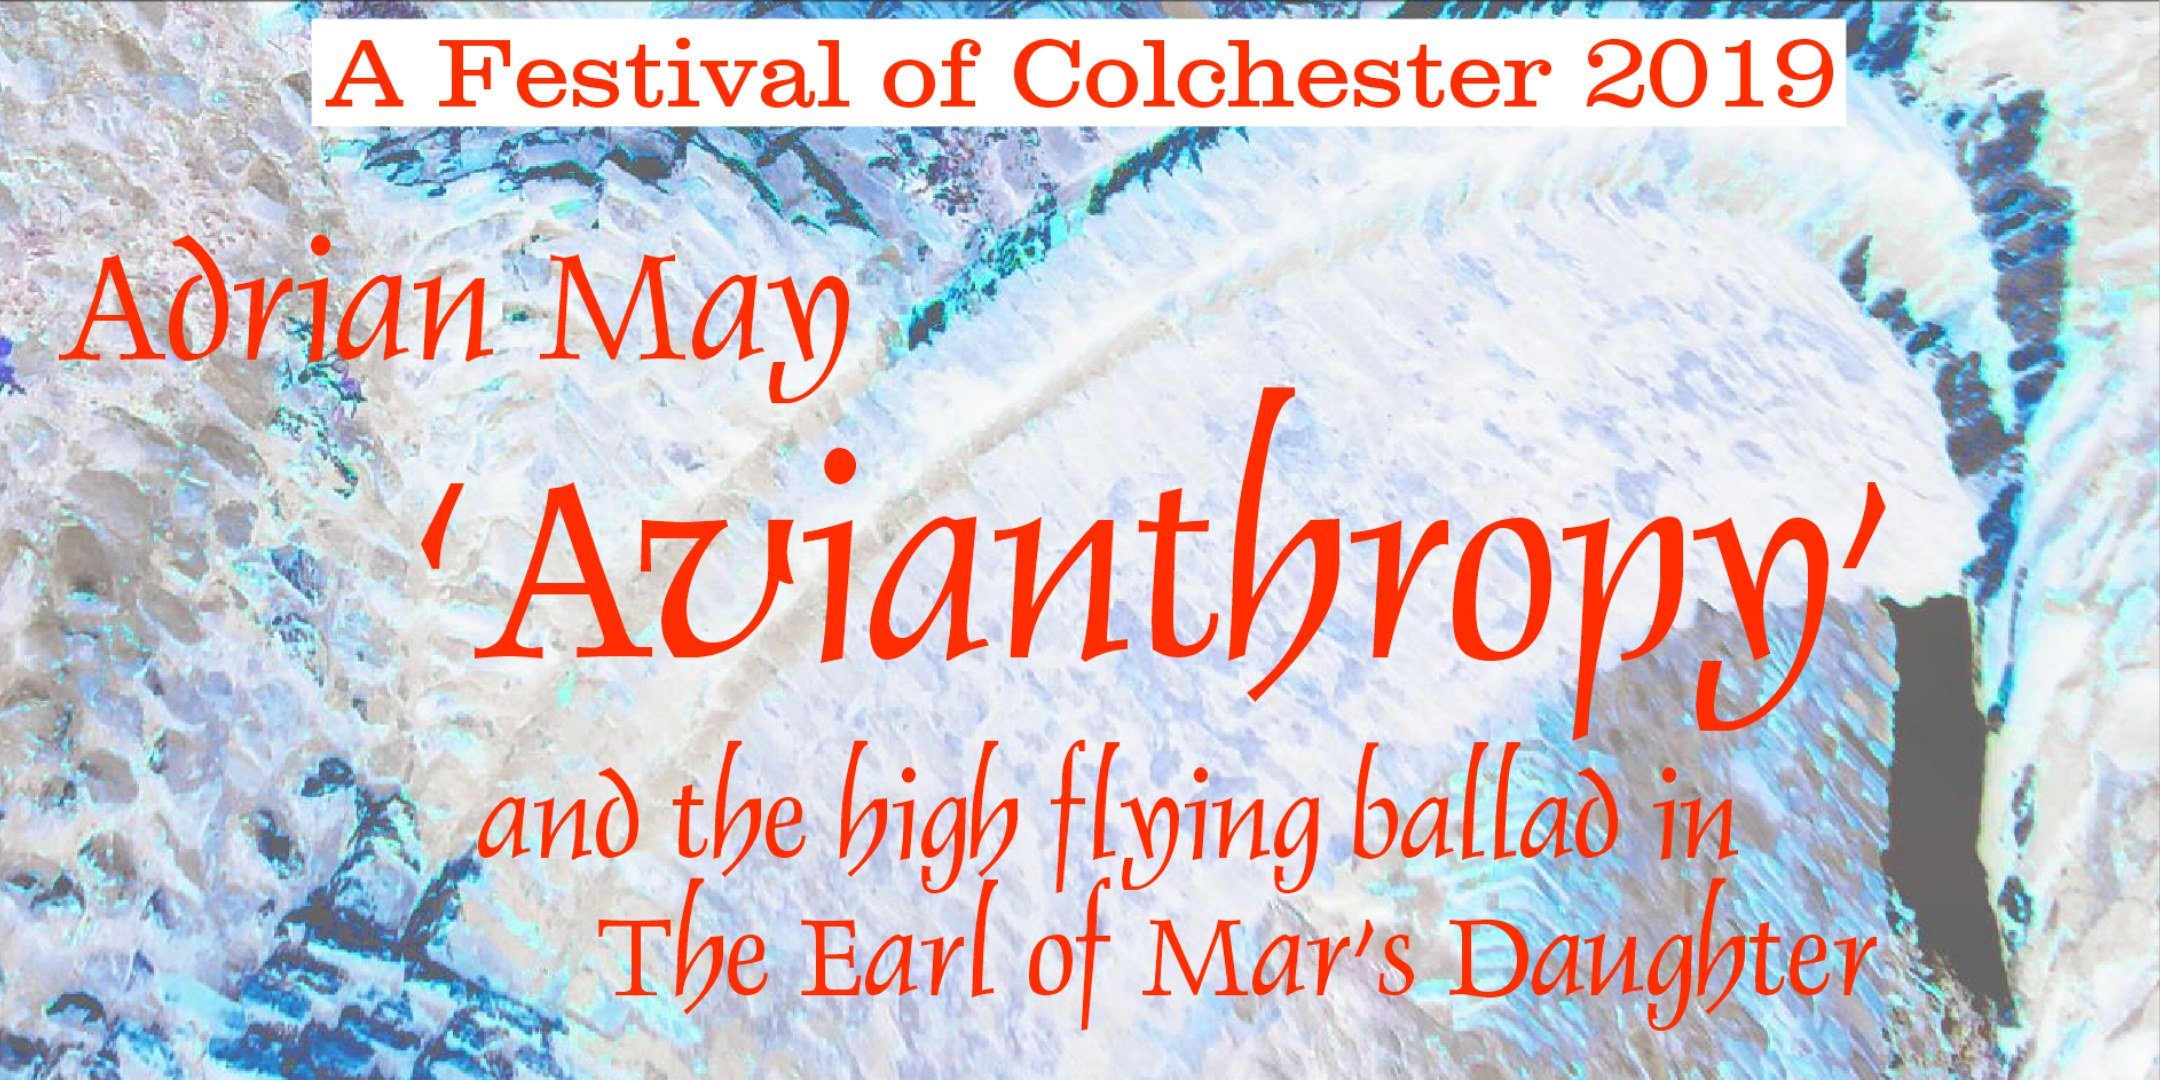 'AVIANTHROPY' and the High Flying Ballad in The Earl of Mar's Daughter